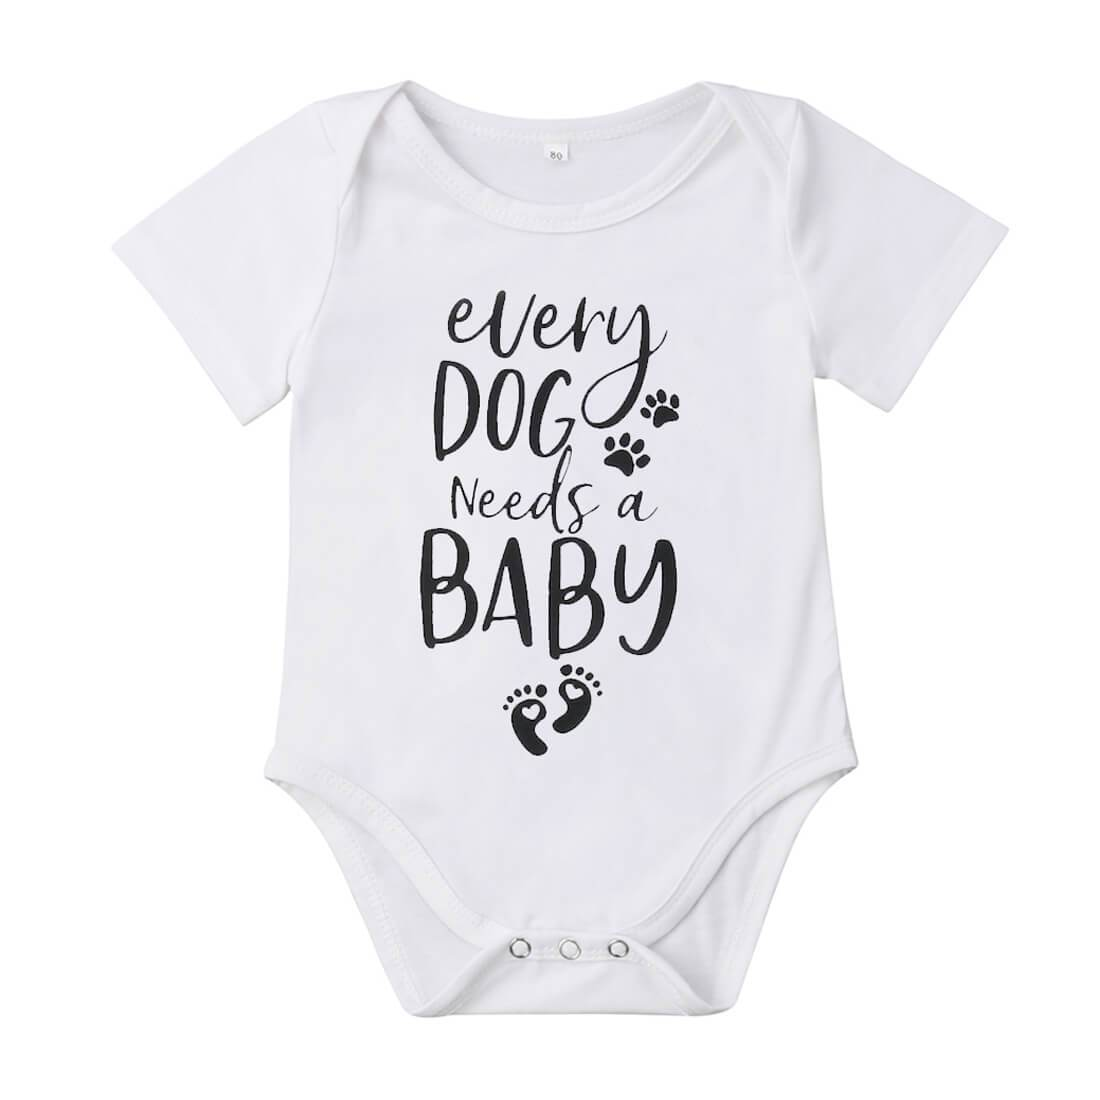 Baby Dog Bodysuit - The Trendy Toddlers